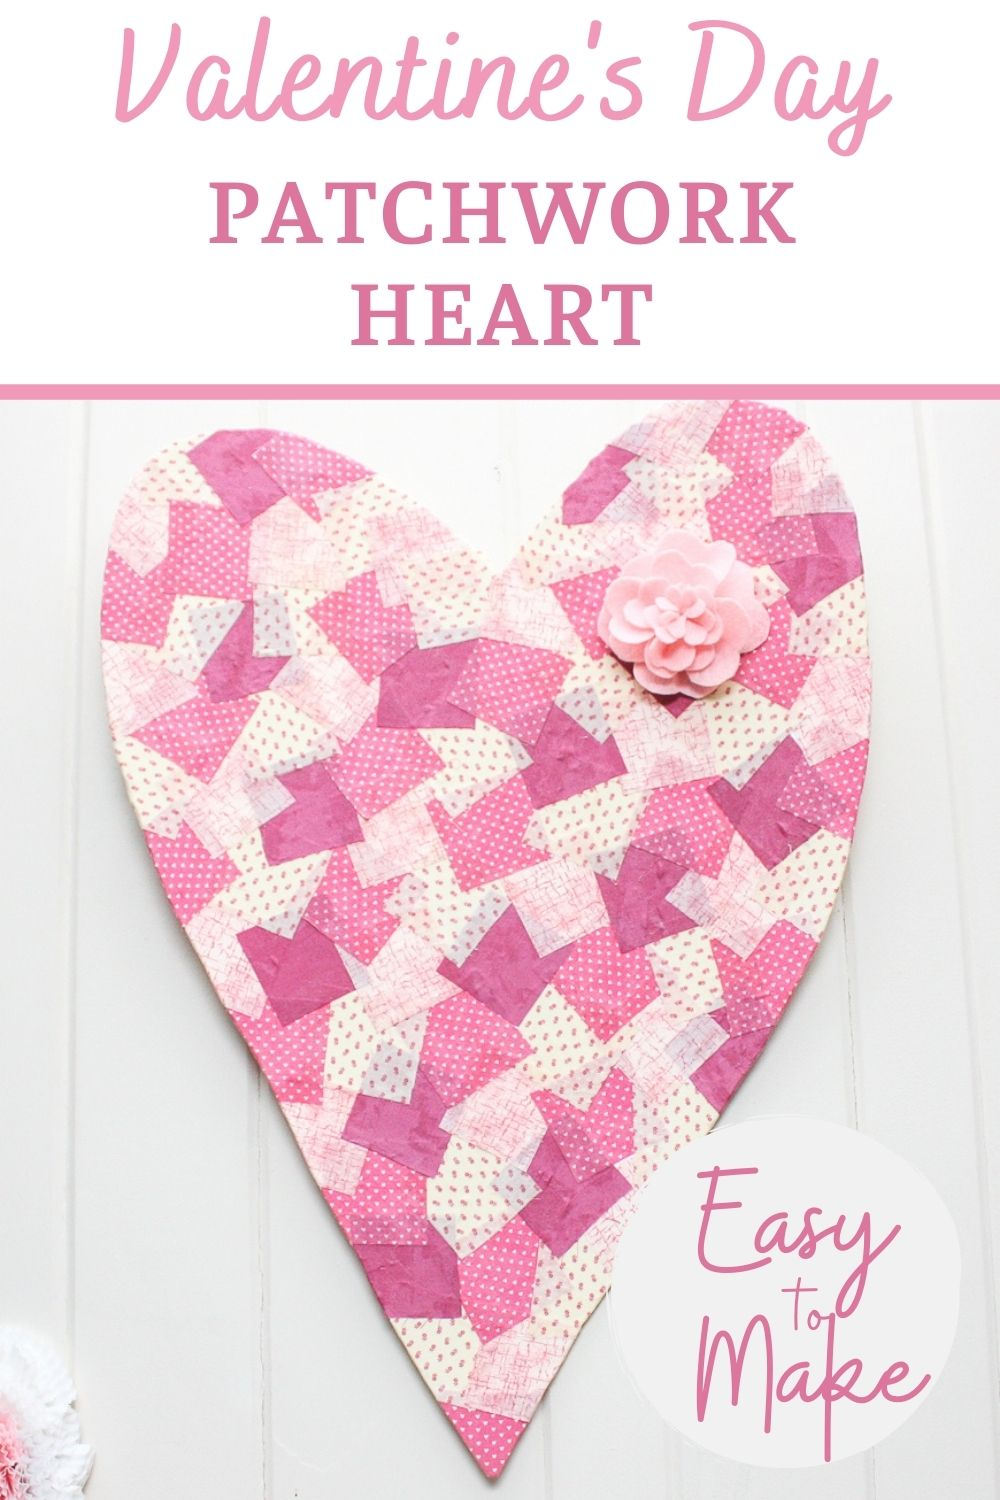 Heart cut from foam core decorated with squares of fabric for a patchwork appearance.